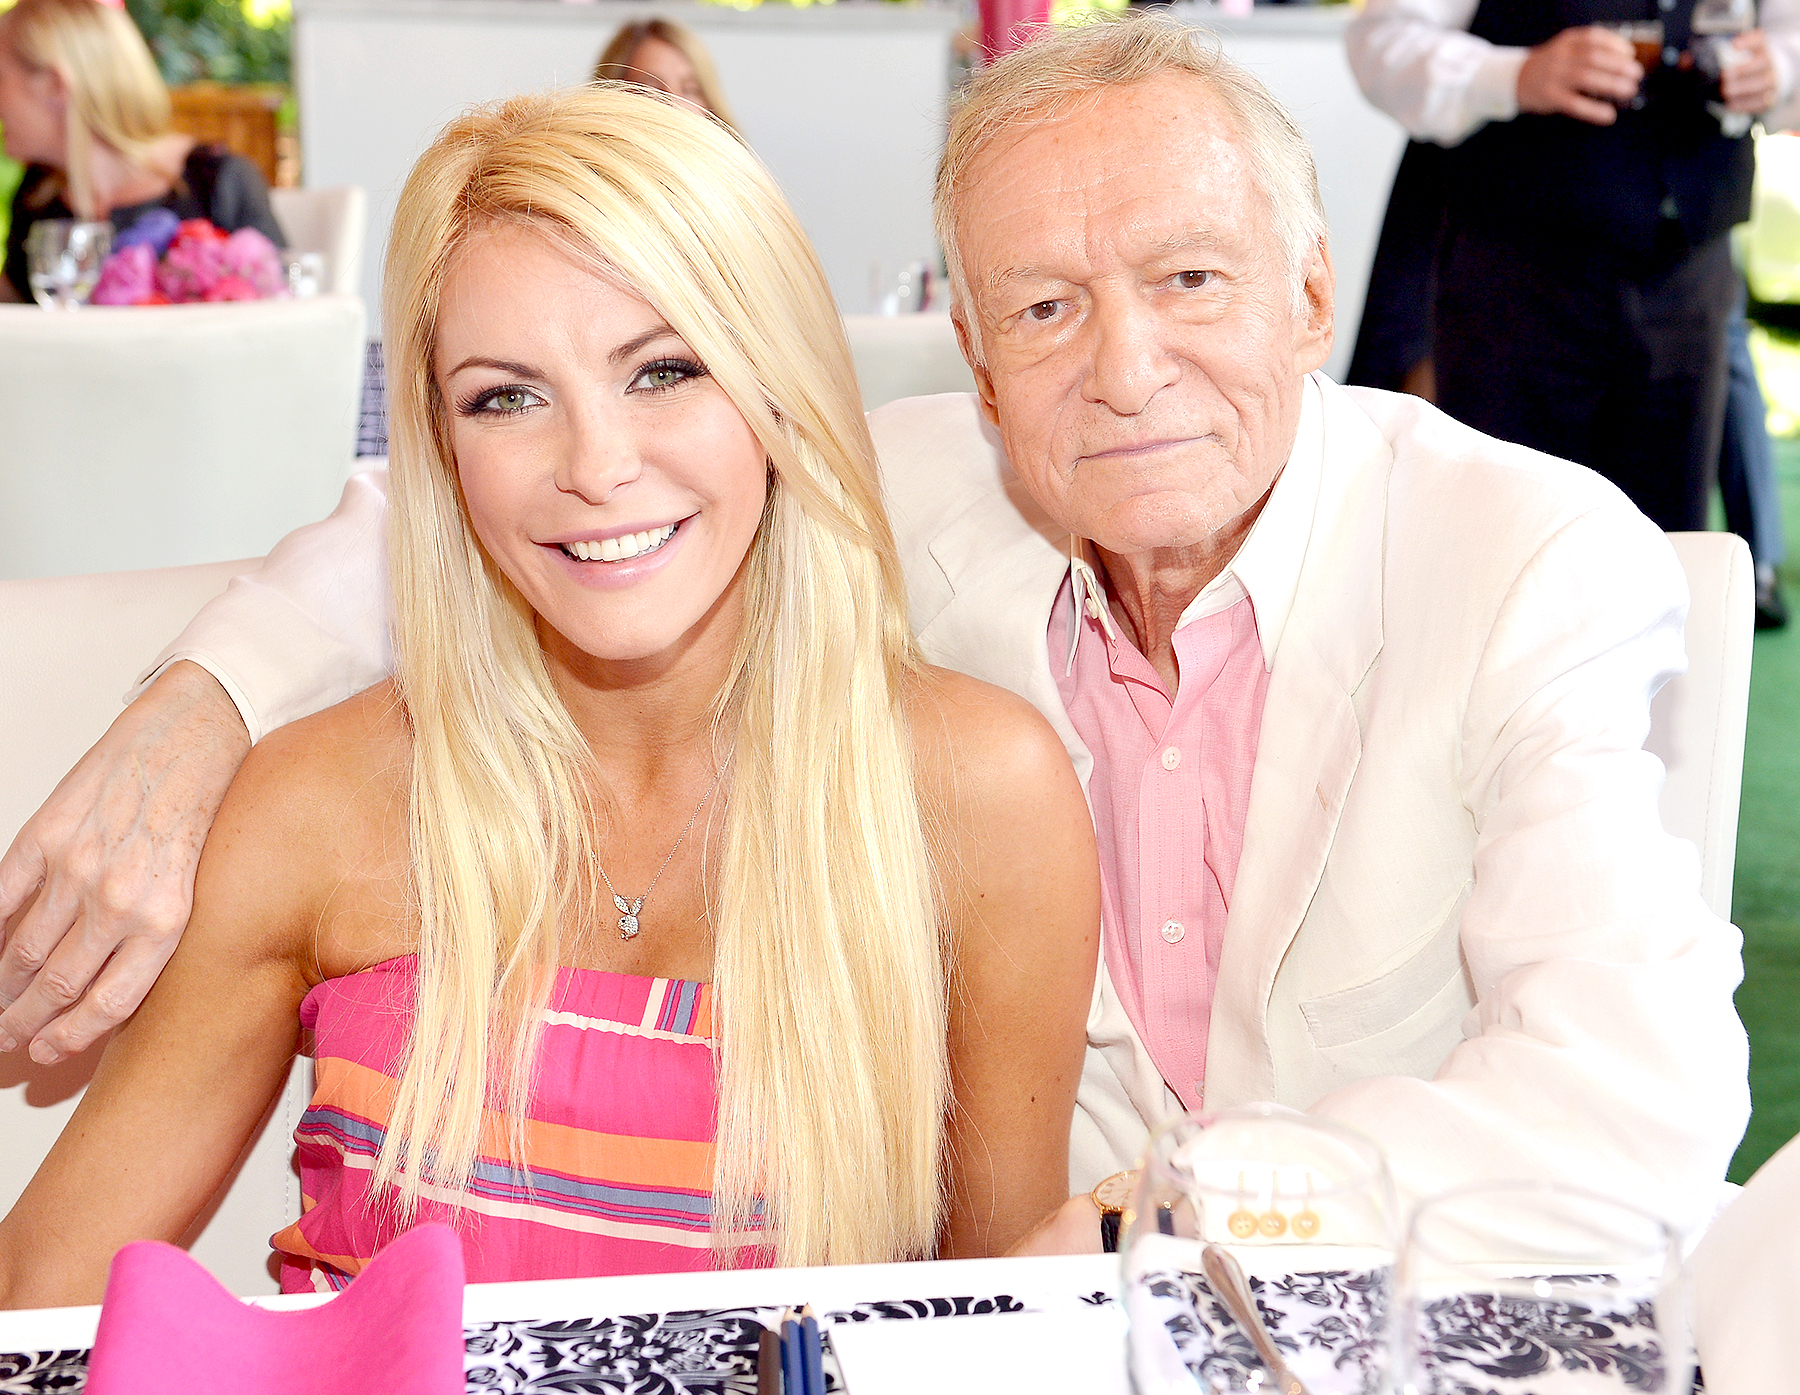 Crystal Harris and Hugh Hefner attend Playboy's 2013 Playmate of the Year luncheon honoring Raquel Pomplun at the Playboy Mansion in Holmby Hills, California, on May 9, 2013.